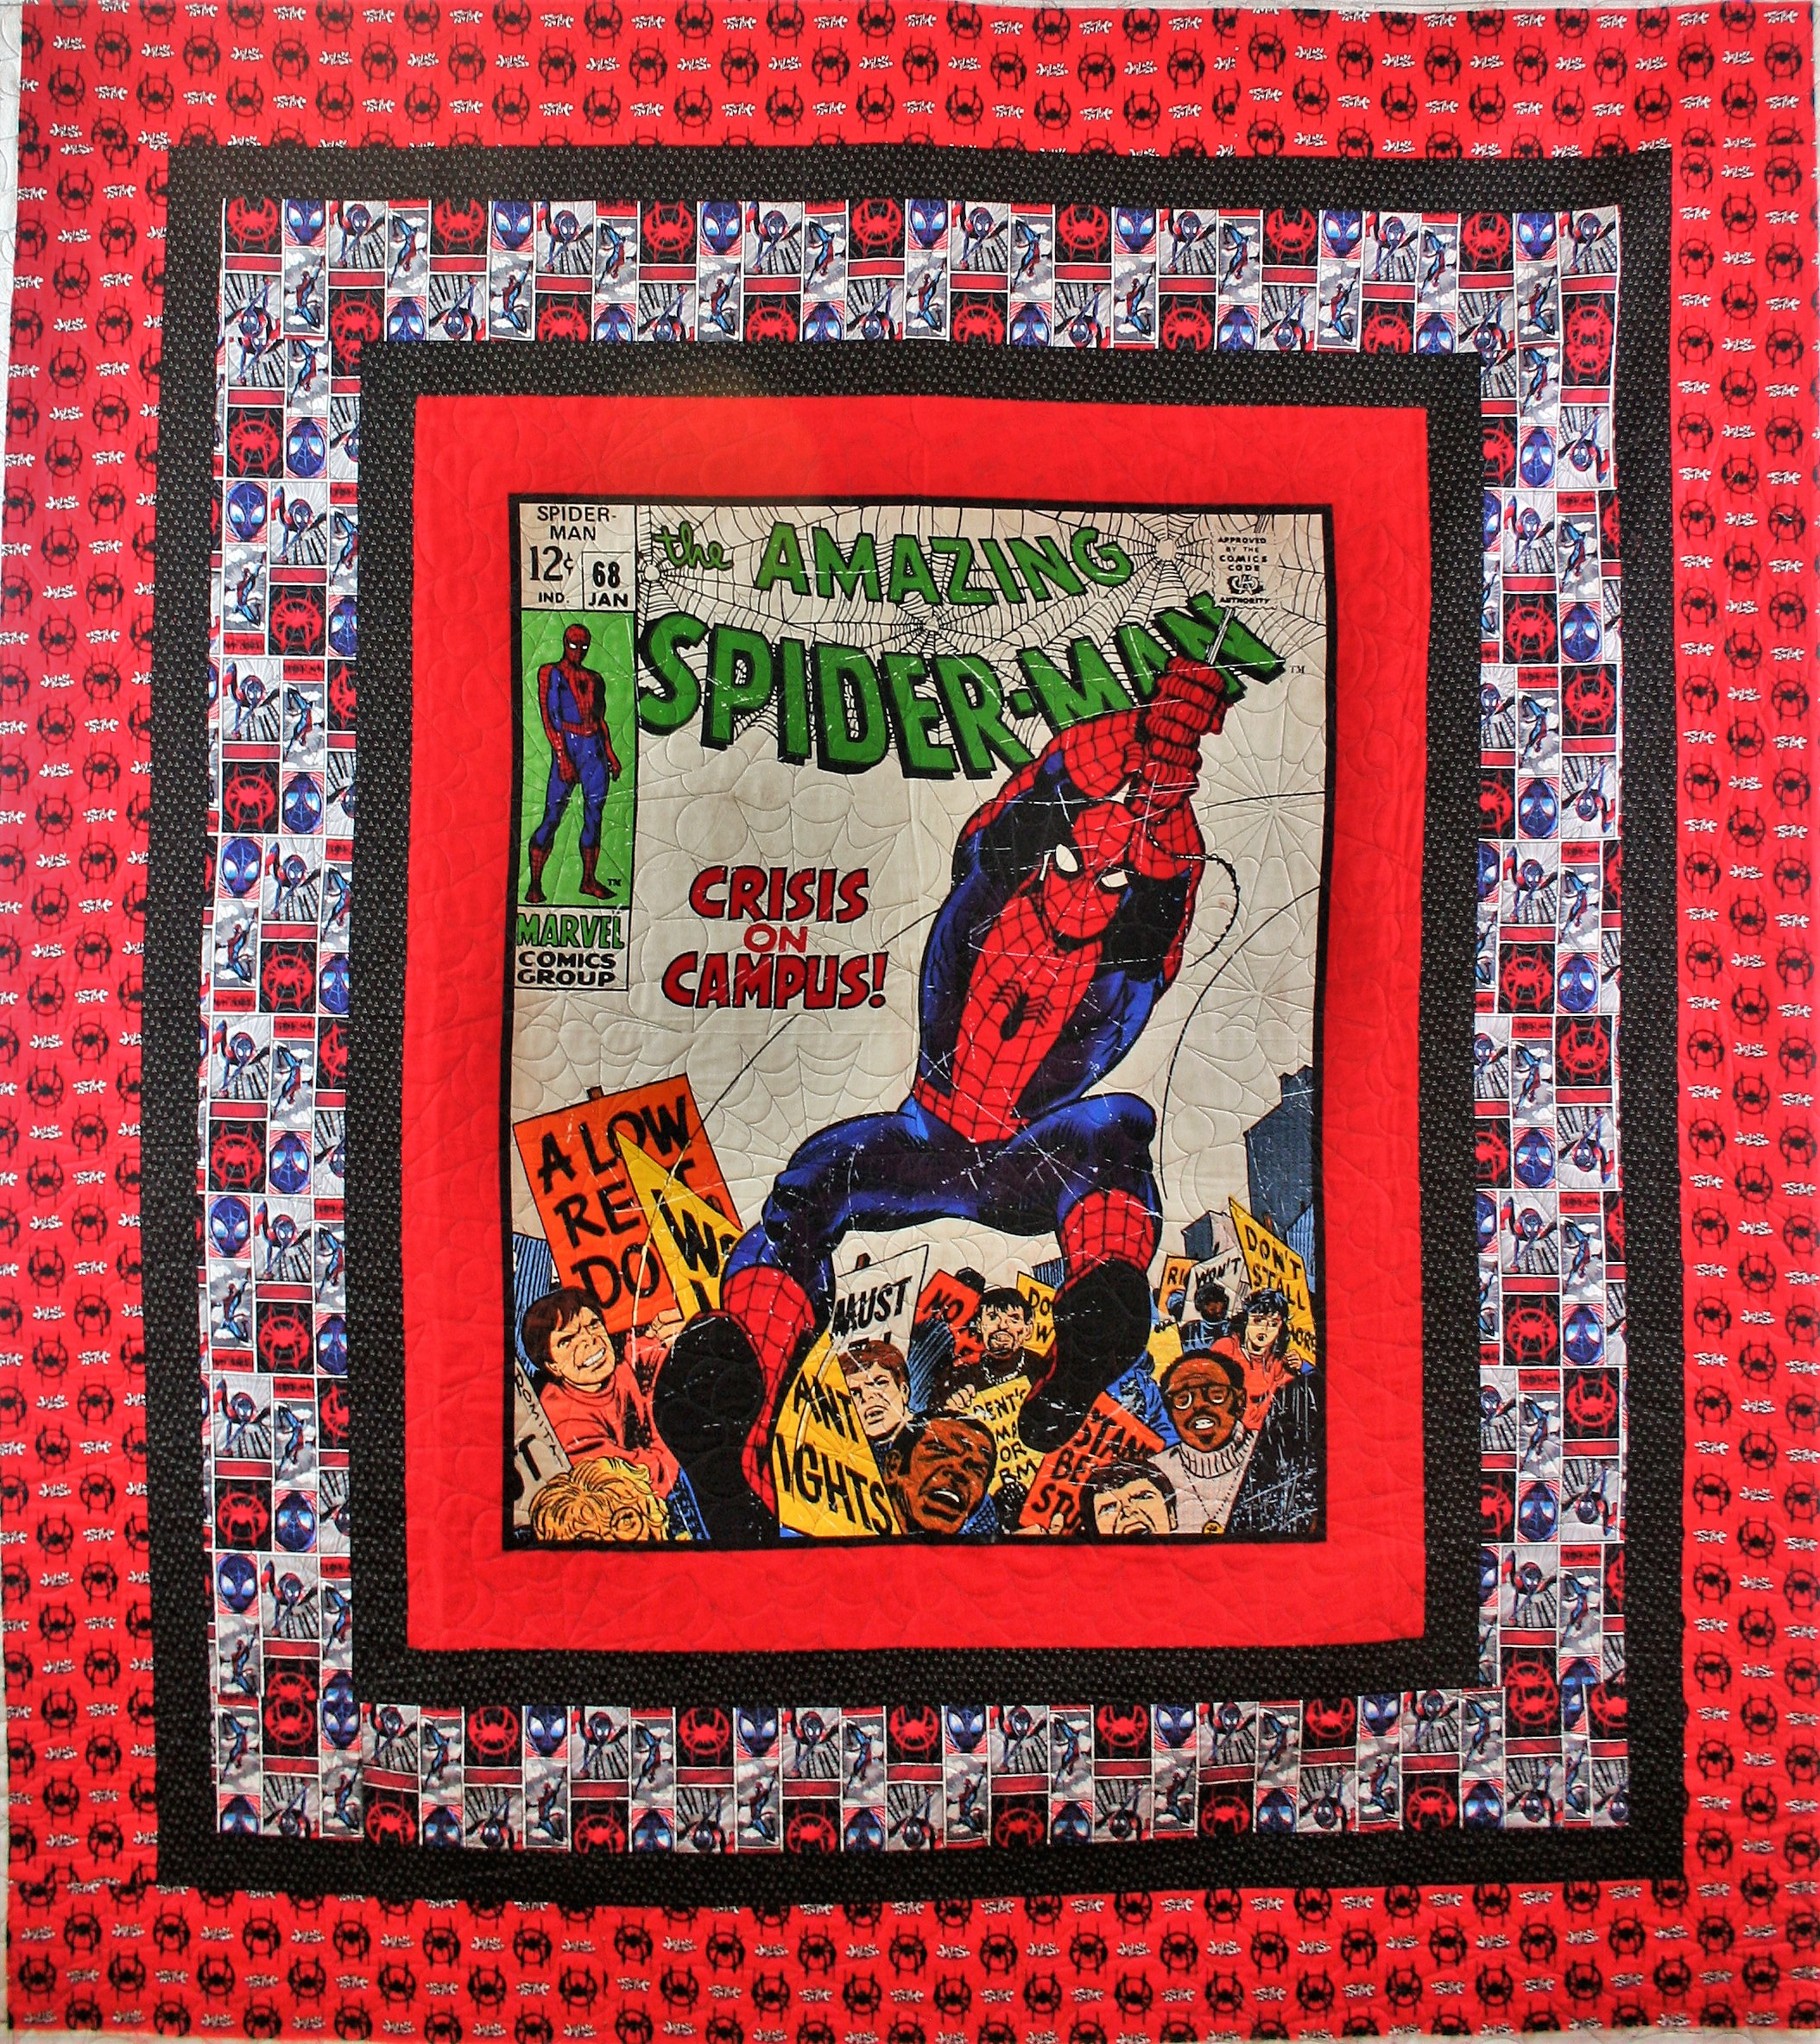 Spiderman (front)